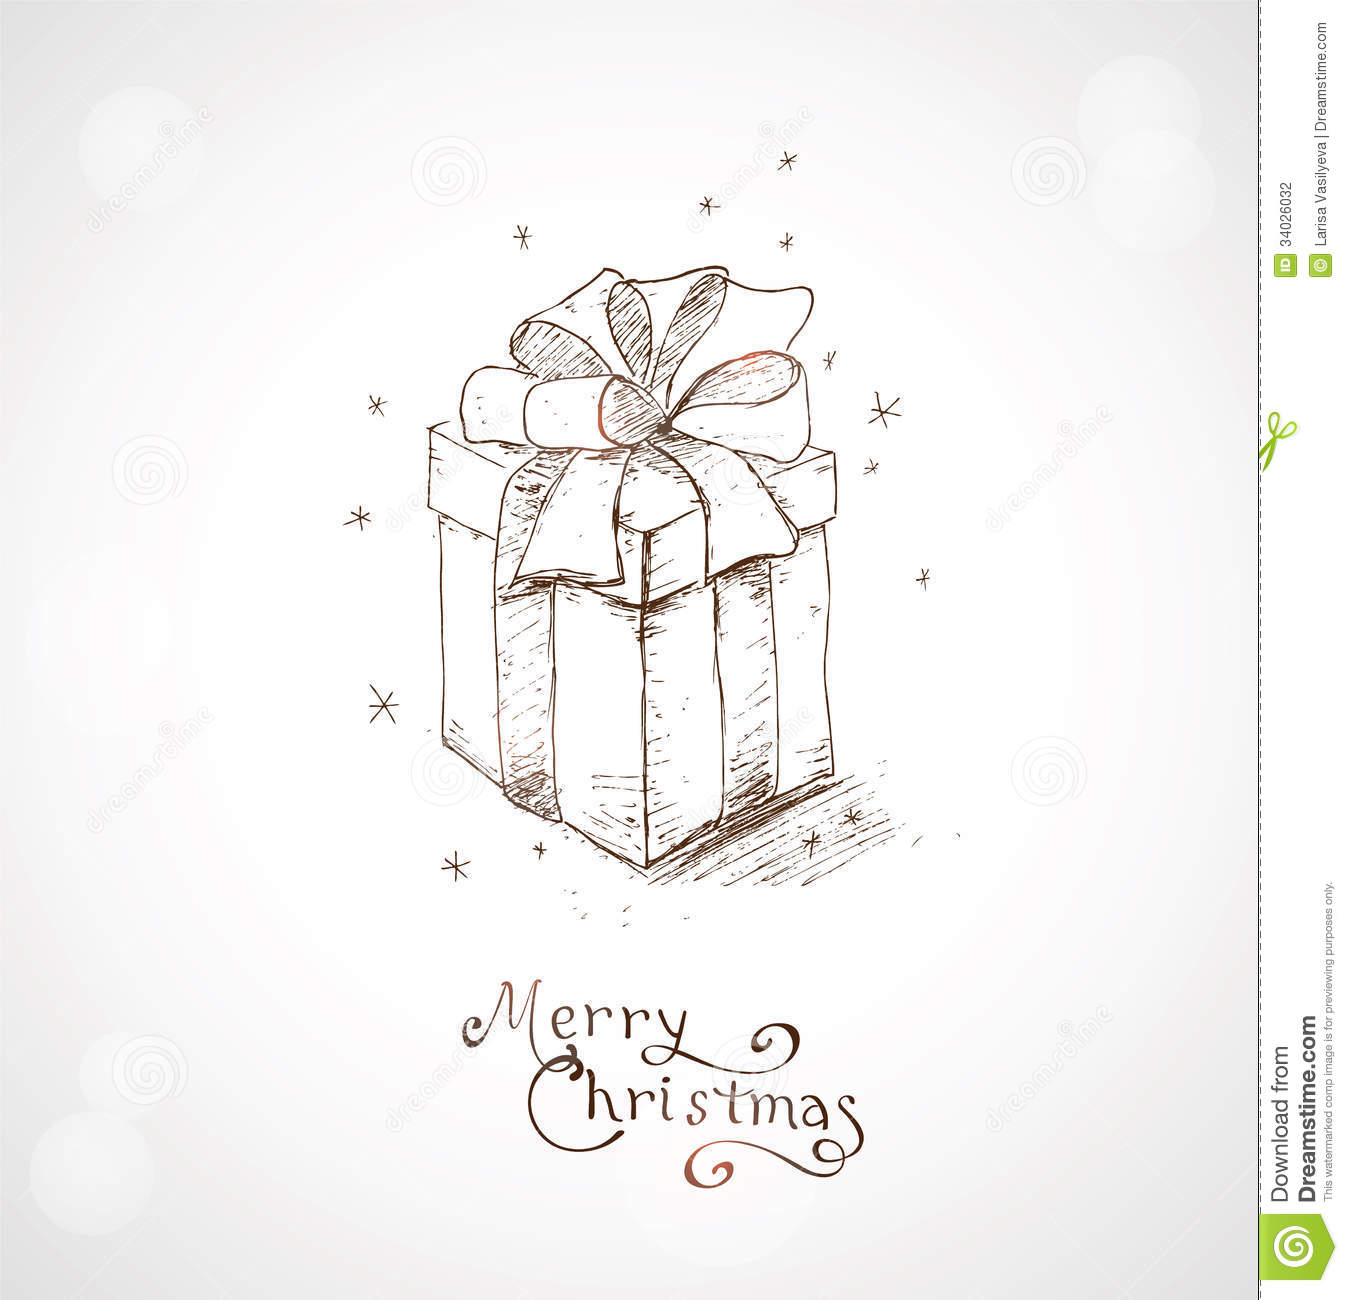 Christmas Greeting Card 4 Stock Vector Illustration Of